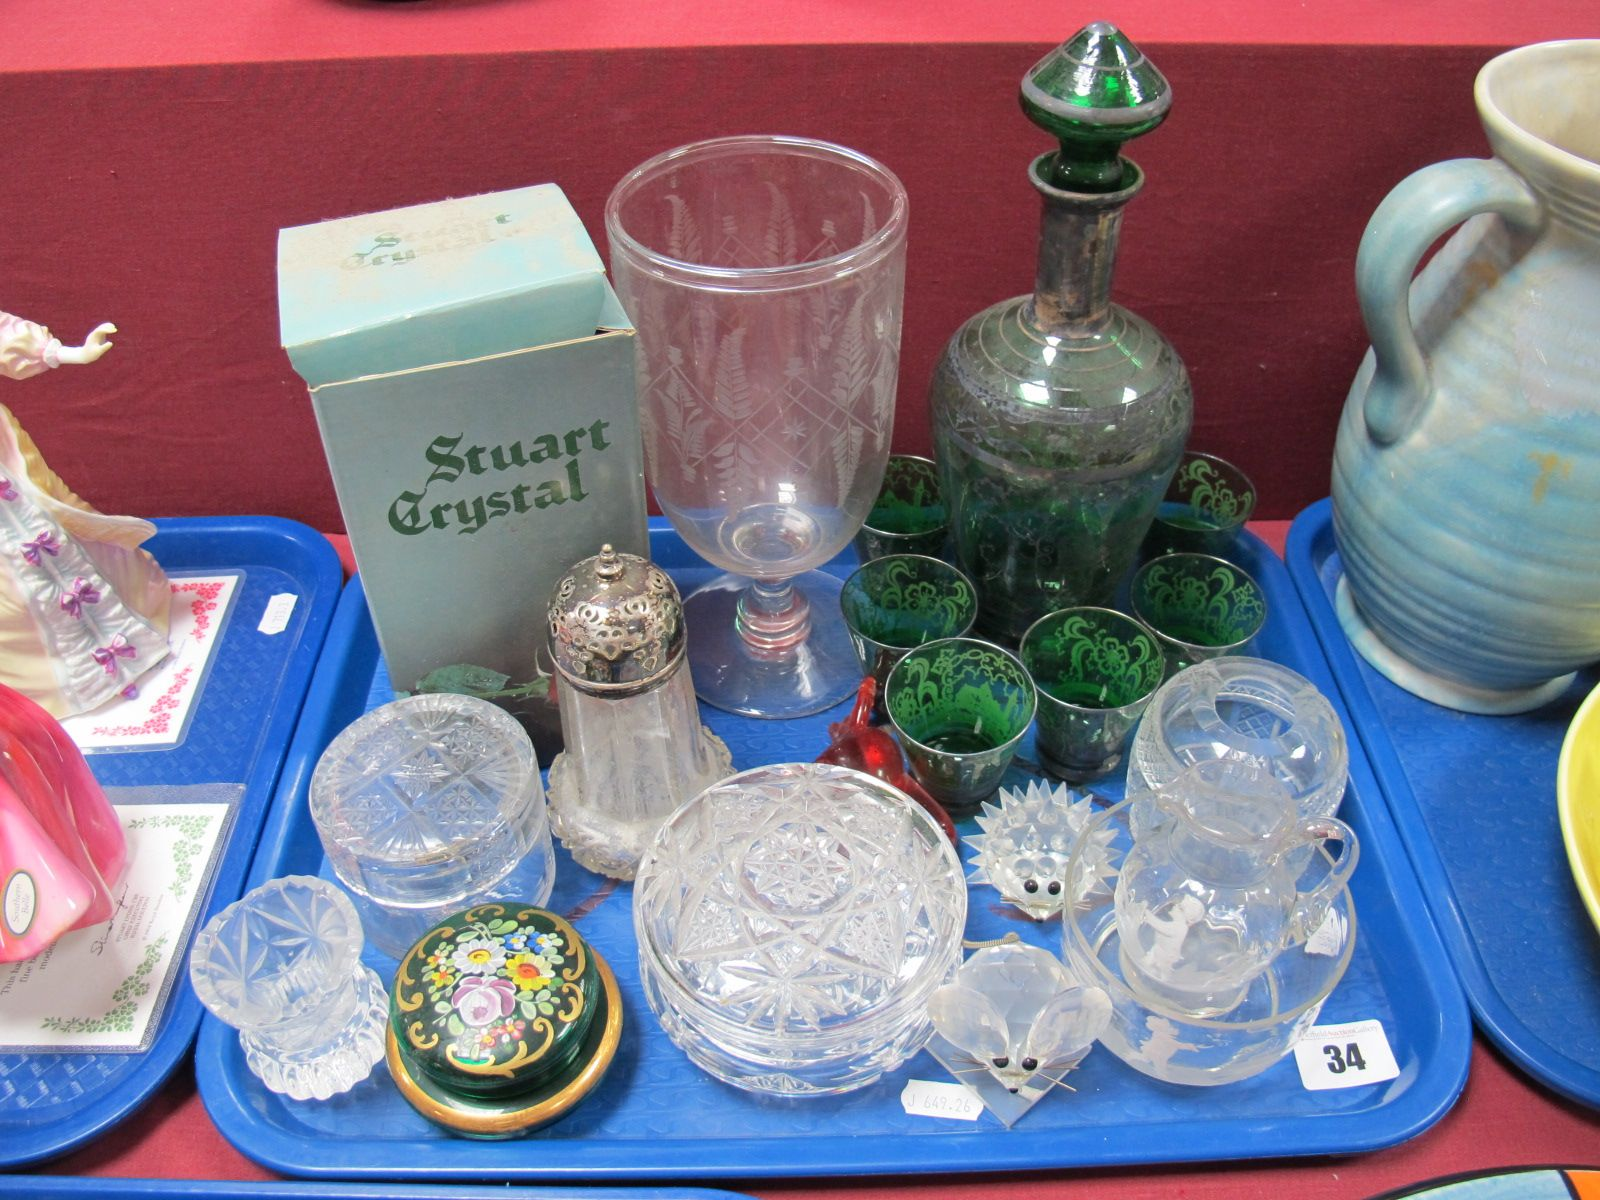 Lot 34 - An Early XX Century Green Glass Liqueur Decanter and Glasses, decorated with silvered overlay